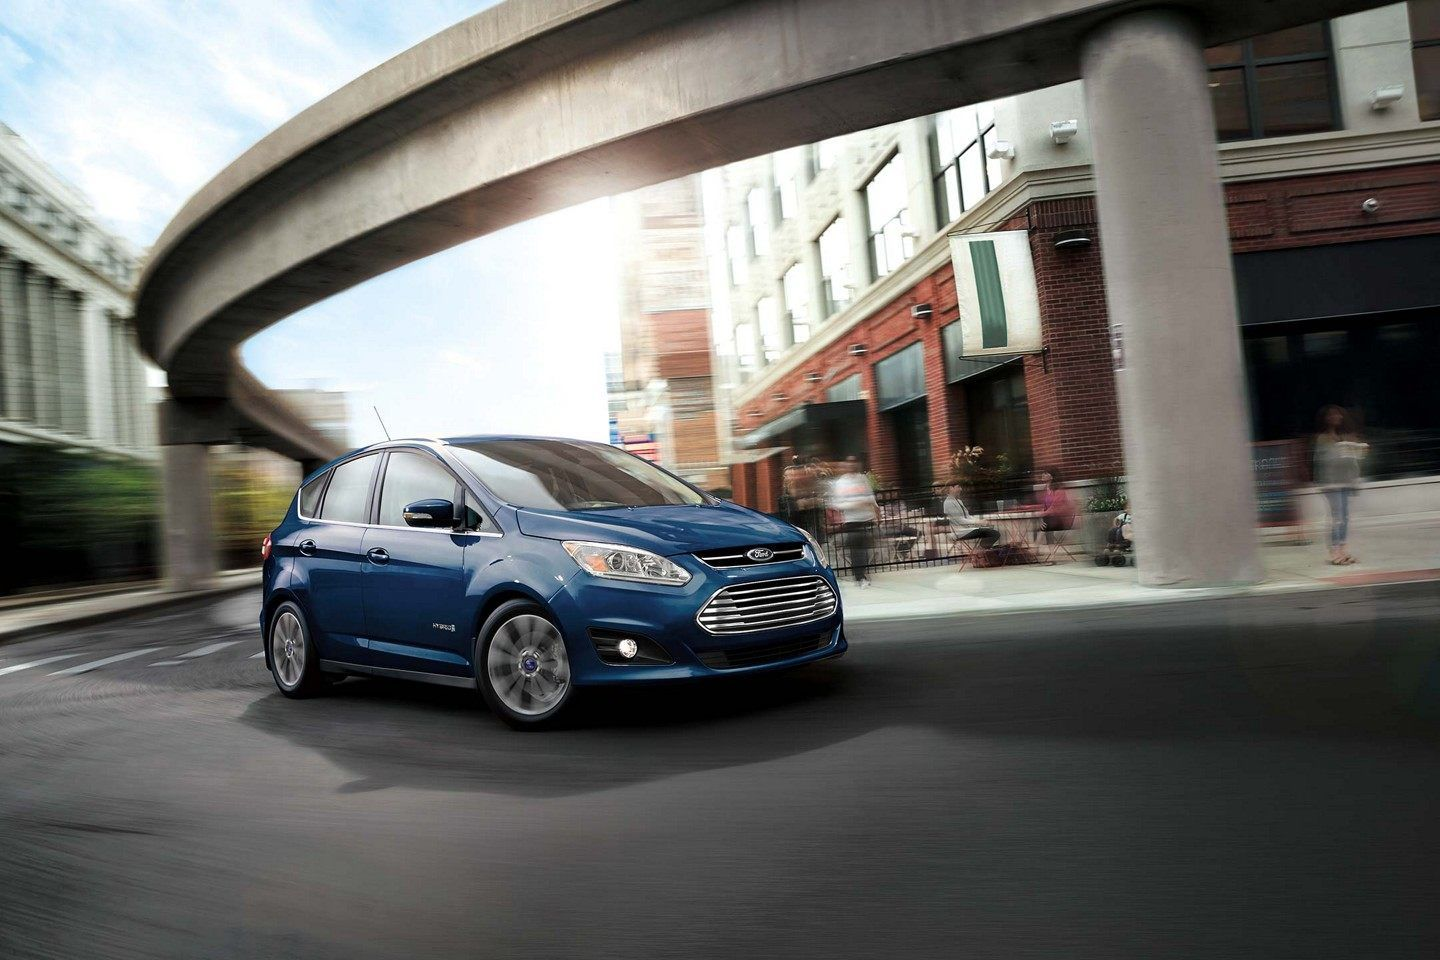 The Courtesy Of Ford Media C Max Hybrid Delivers Best In Class 188 Combined Horsepower And In All Electric Mode It Is Capable Of Ford Car New And Used Cars